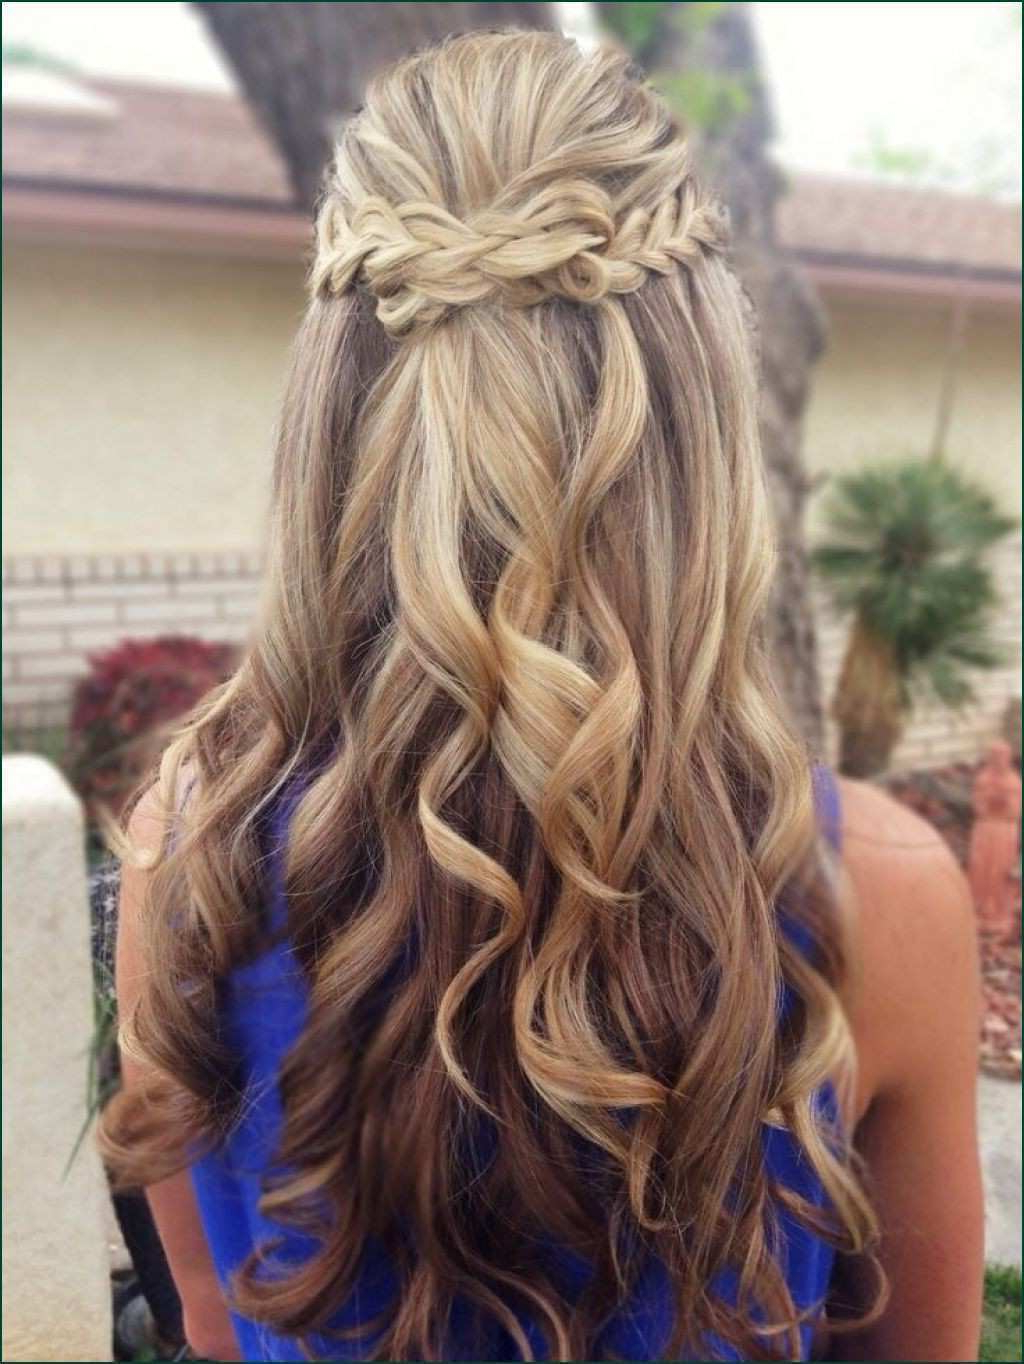 Most Current Wavy Prom Hairstyles In Half Up Half Down Curled Prom Hairstyles Wearable T12i Prom (View 14 of 20)